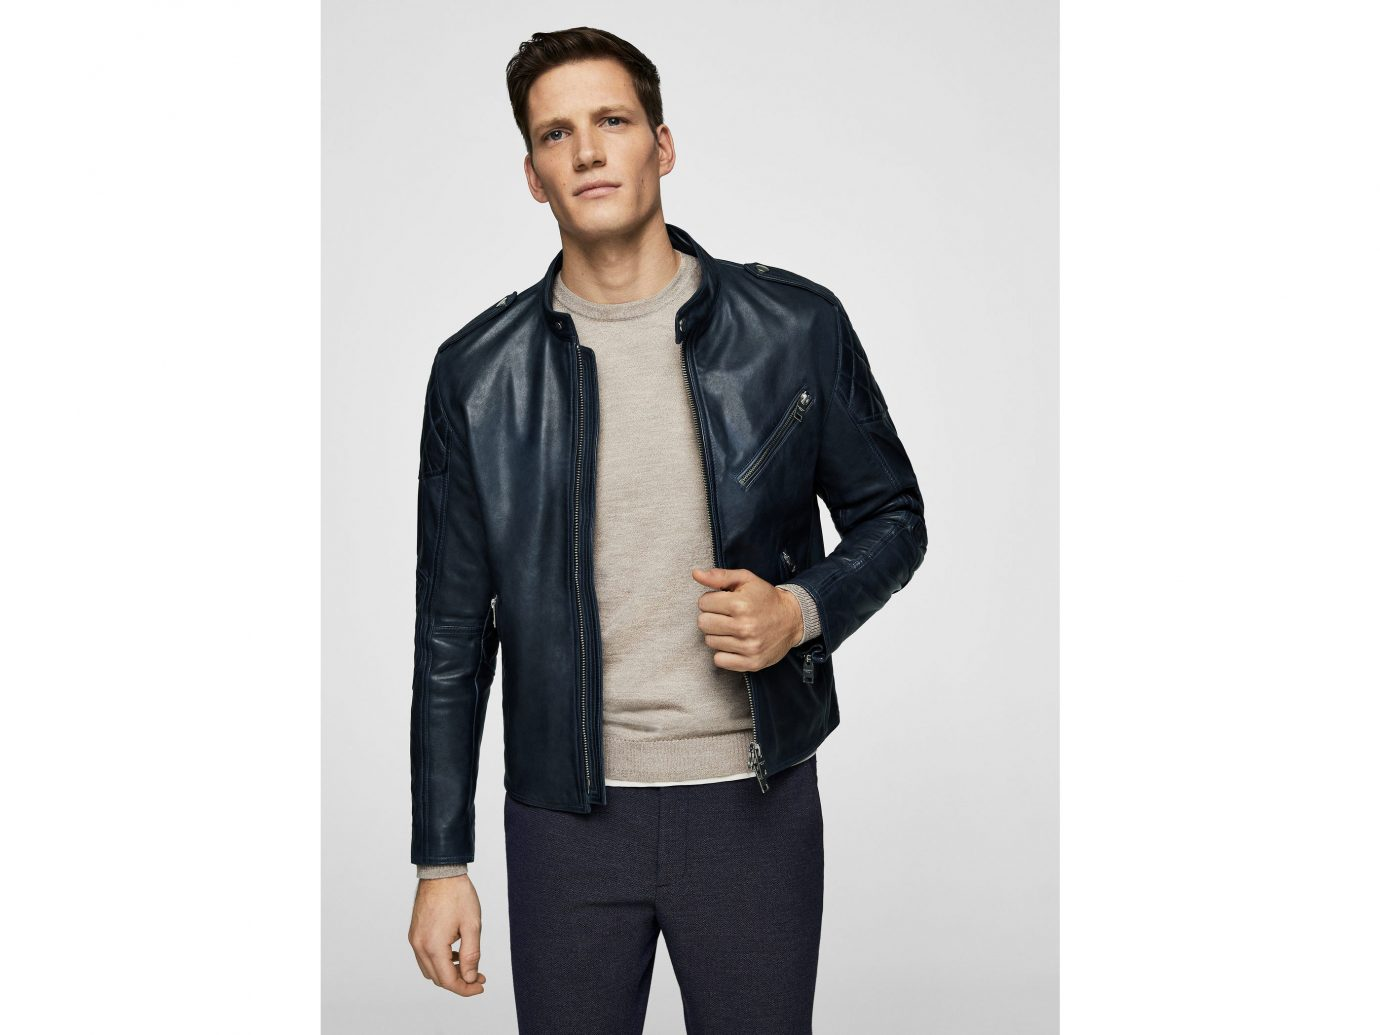 Packing Tips Style + Design Travel Shop person posing man suit standing clothing jacket leather jacket leather wearing black textile material sleeve dressed jeans trouser male